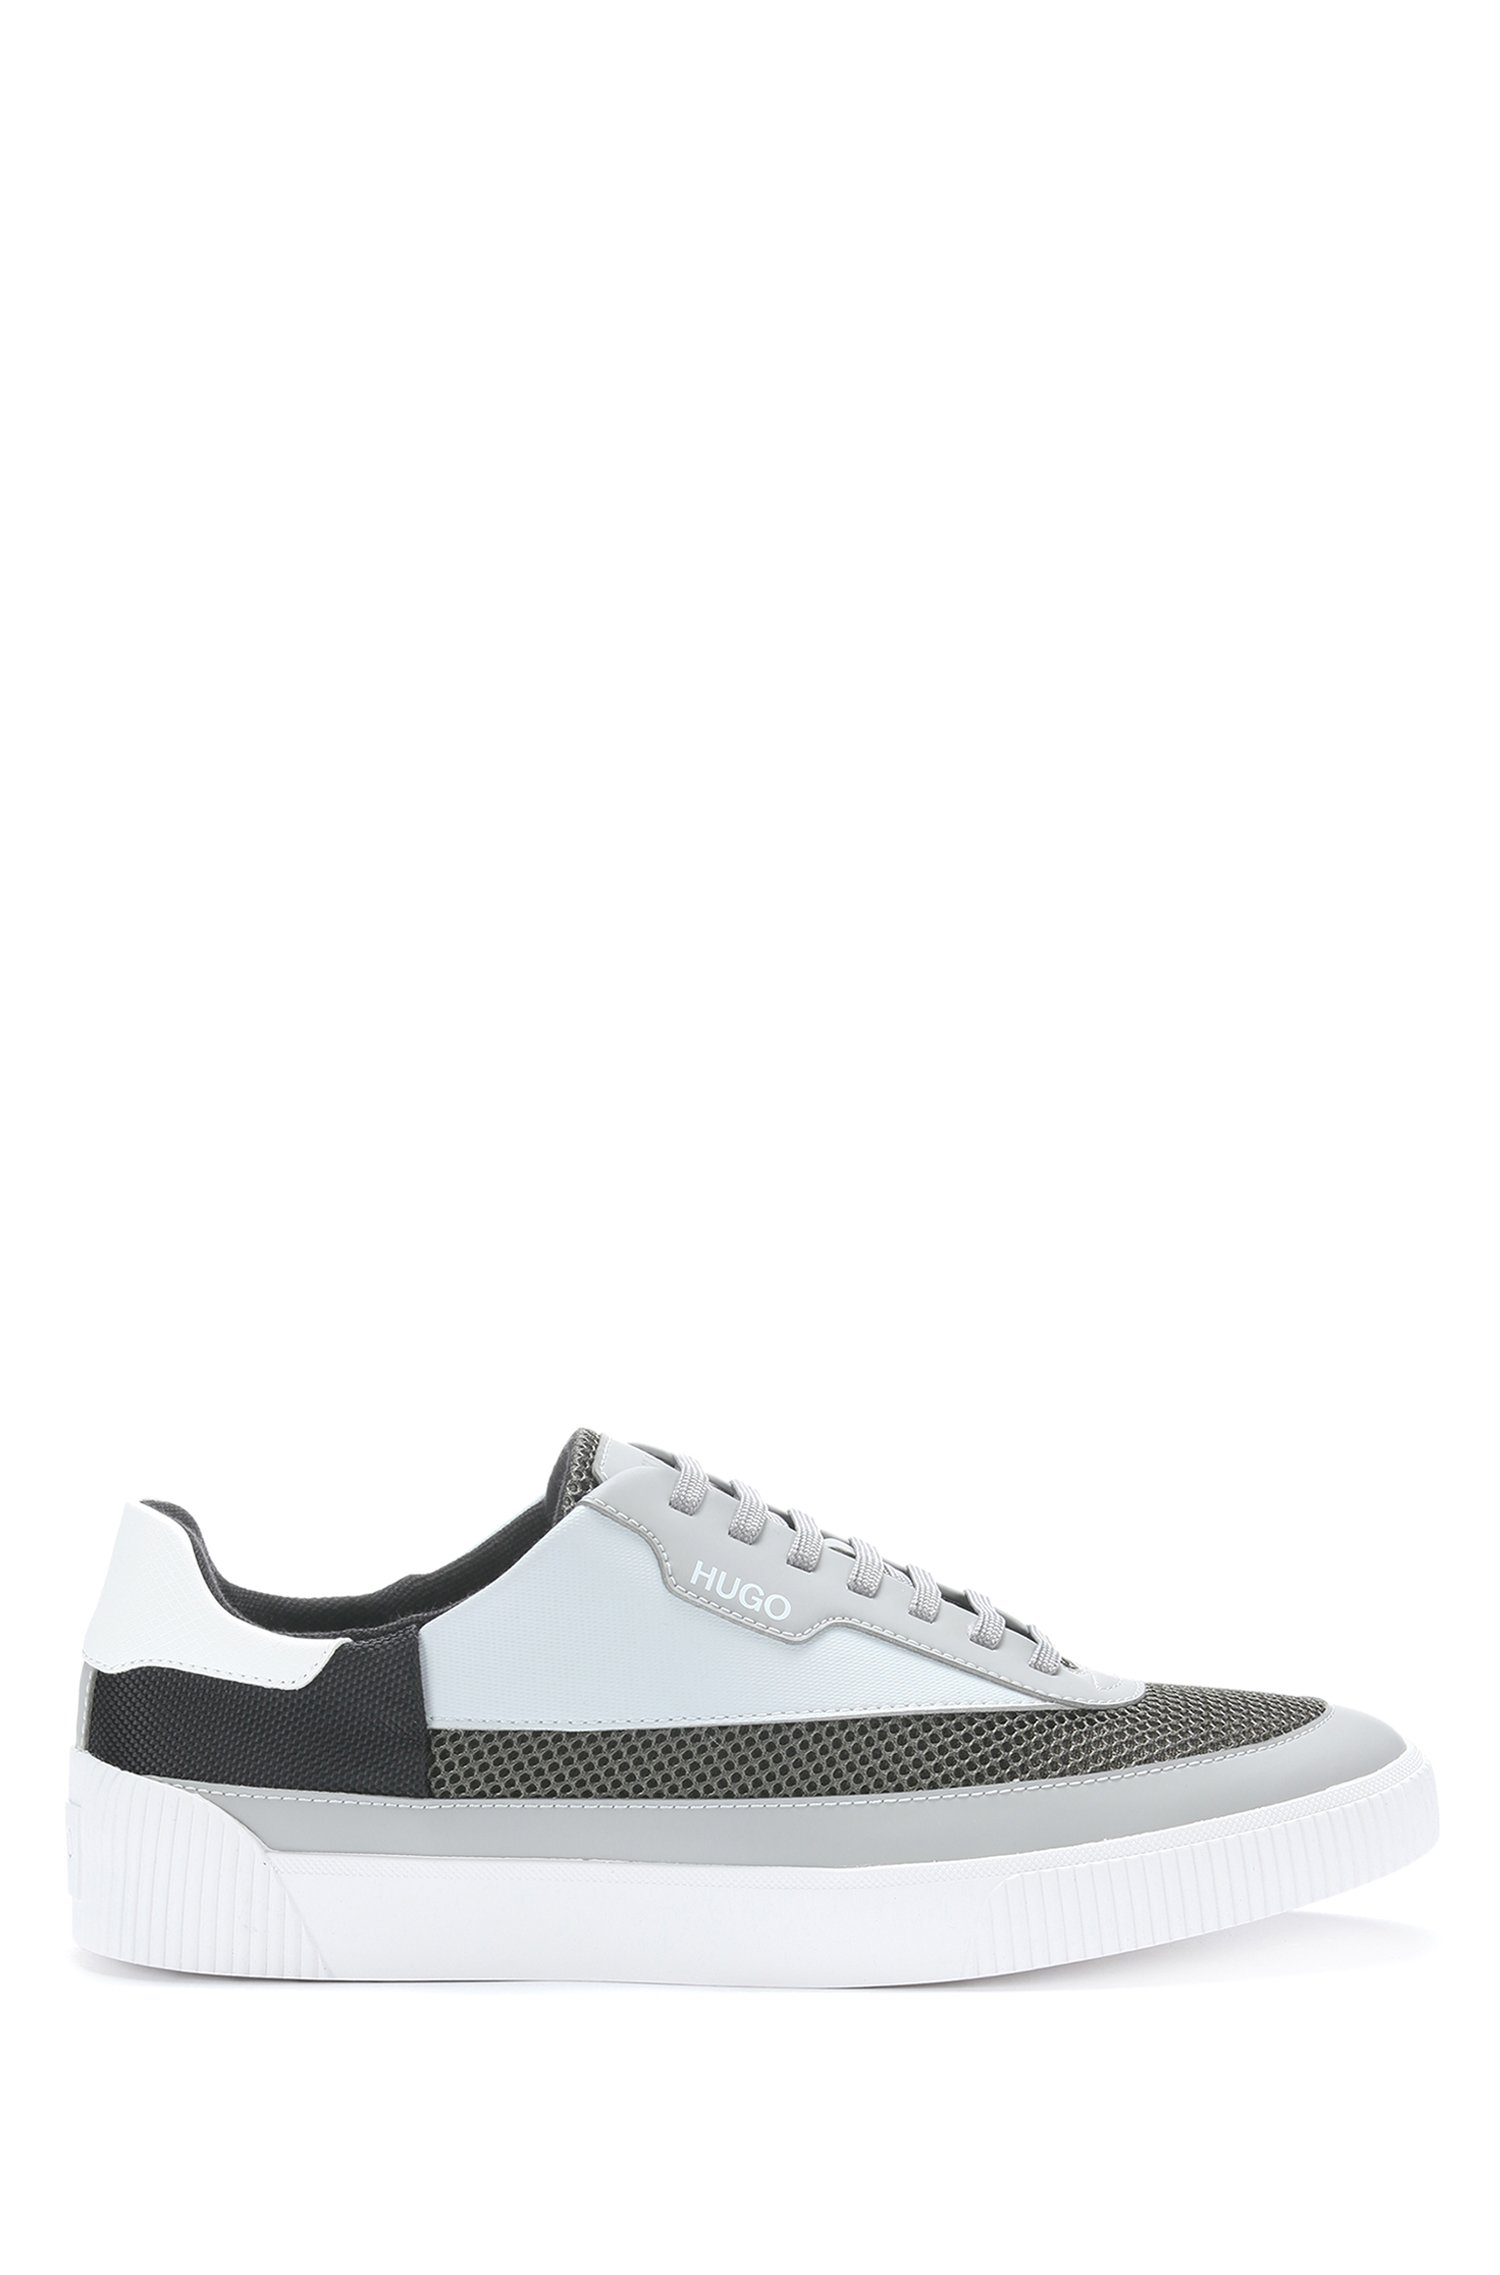 Tennis-style trainers in mixed materials with mesh detailing, Grey